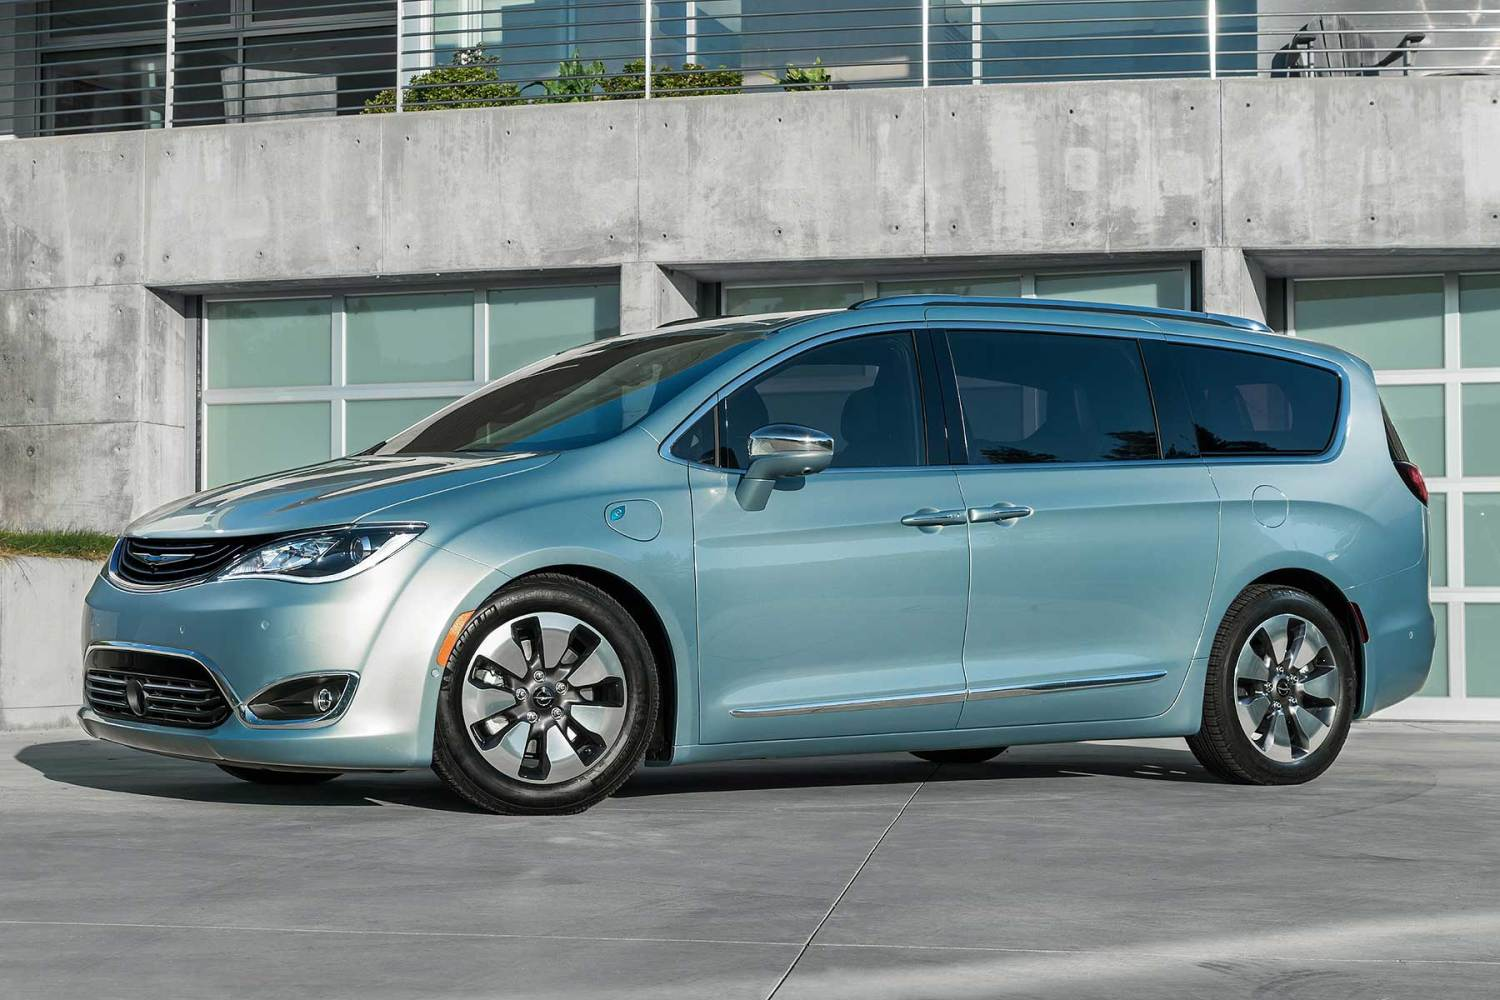 Chrysler Pacifica Hybrid